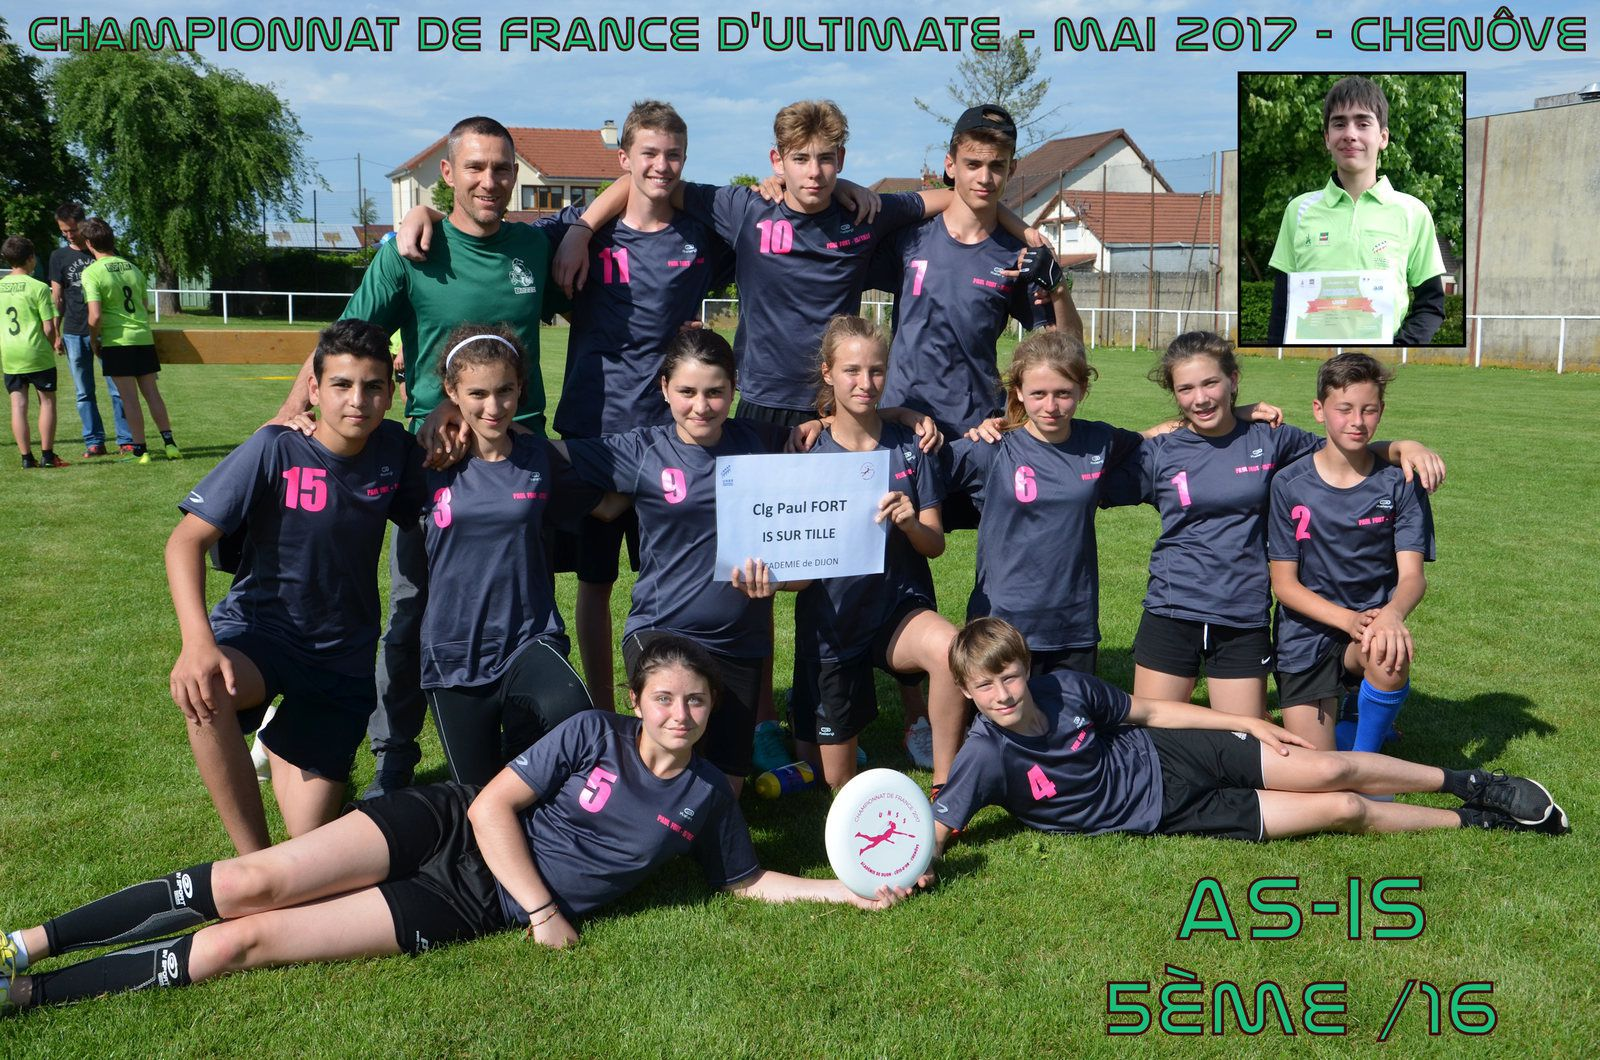 5ème place au Championnat de France d'Ultimate 2016/2017